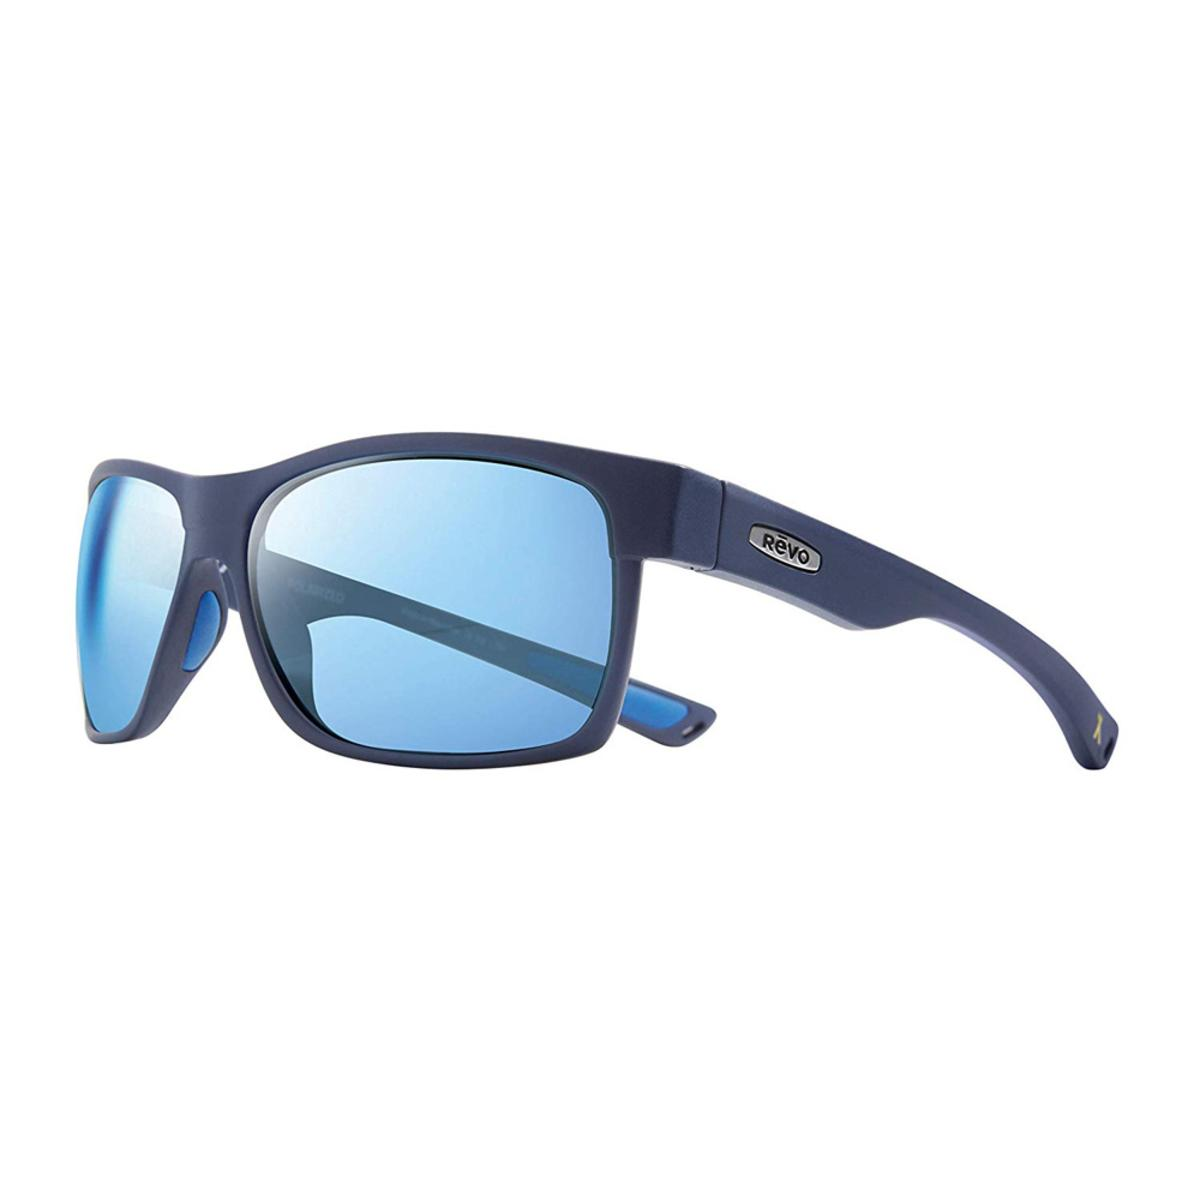 cda55380a Revo Men's Espen Rectangle Sunglasses Blue Water Lens with Blue Frame - The  Warming Store